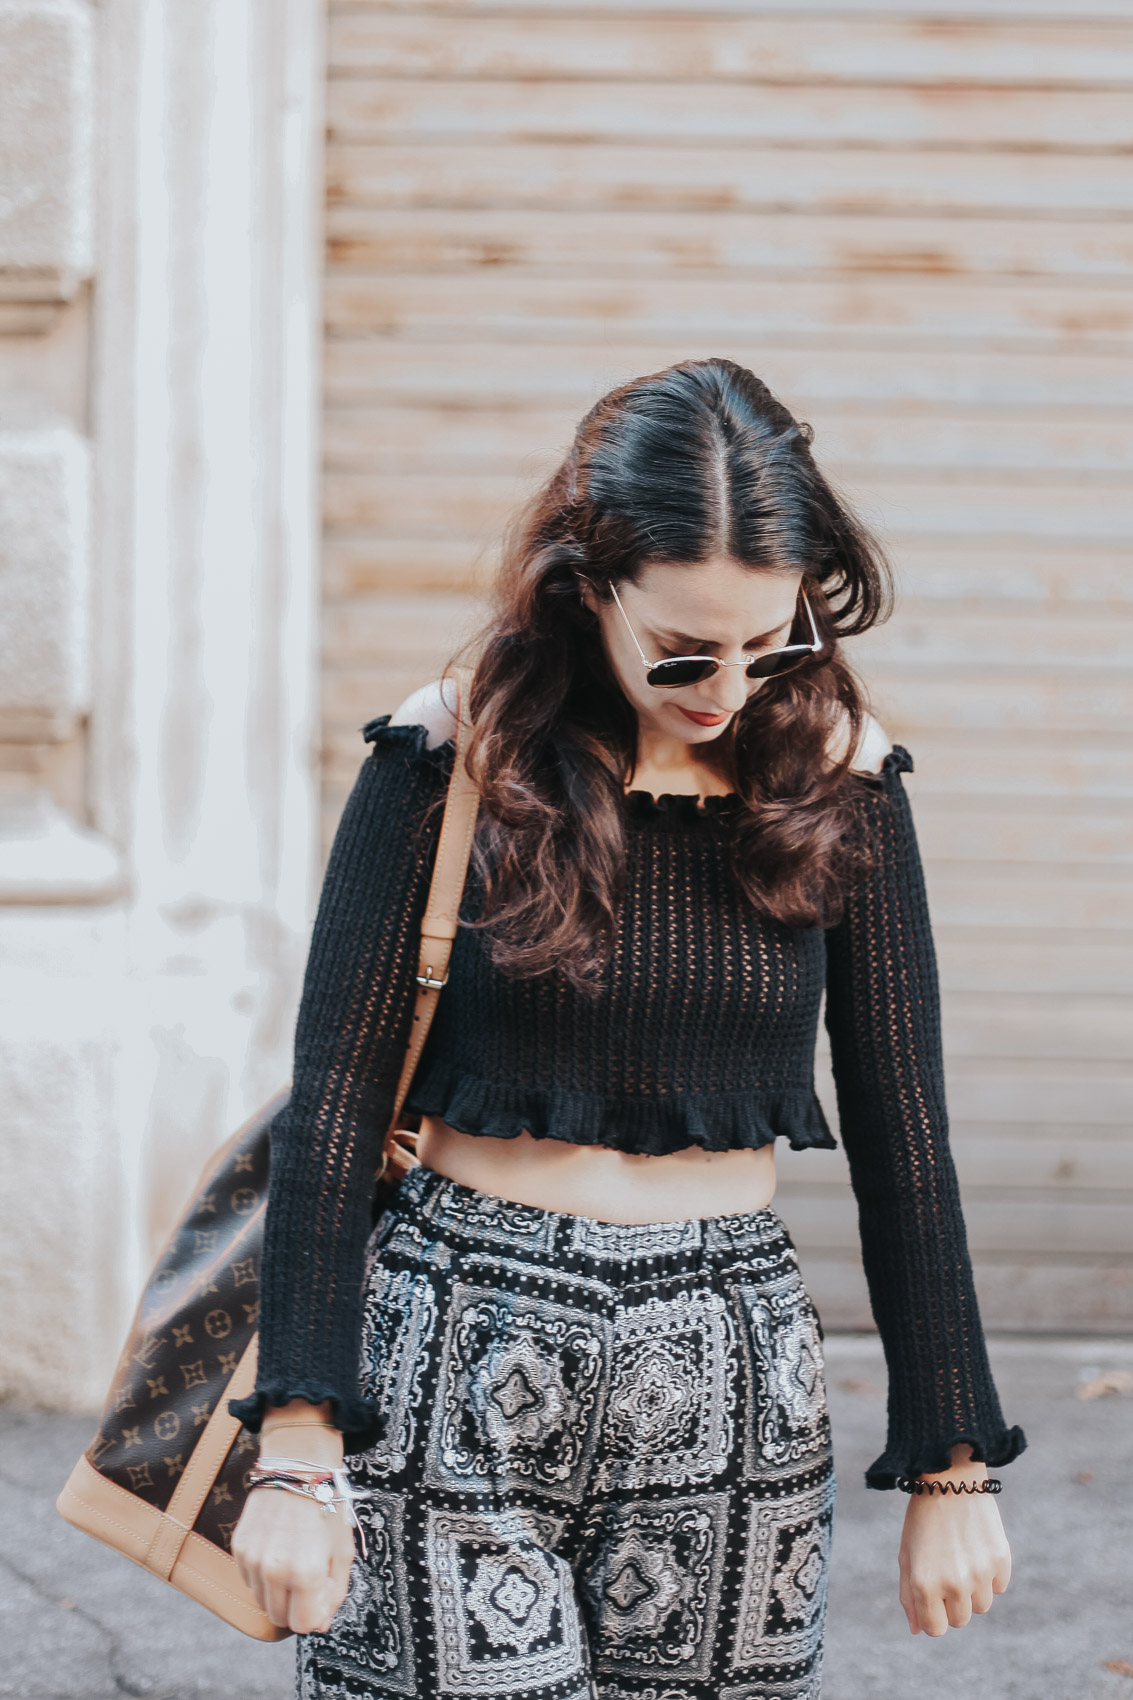 ruffle black top from femme luxe finery